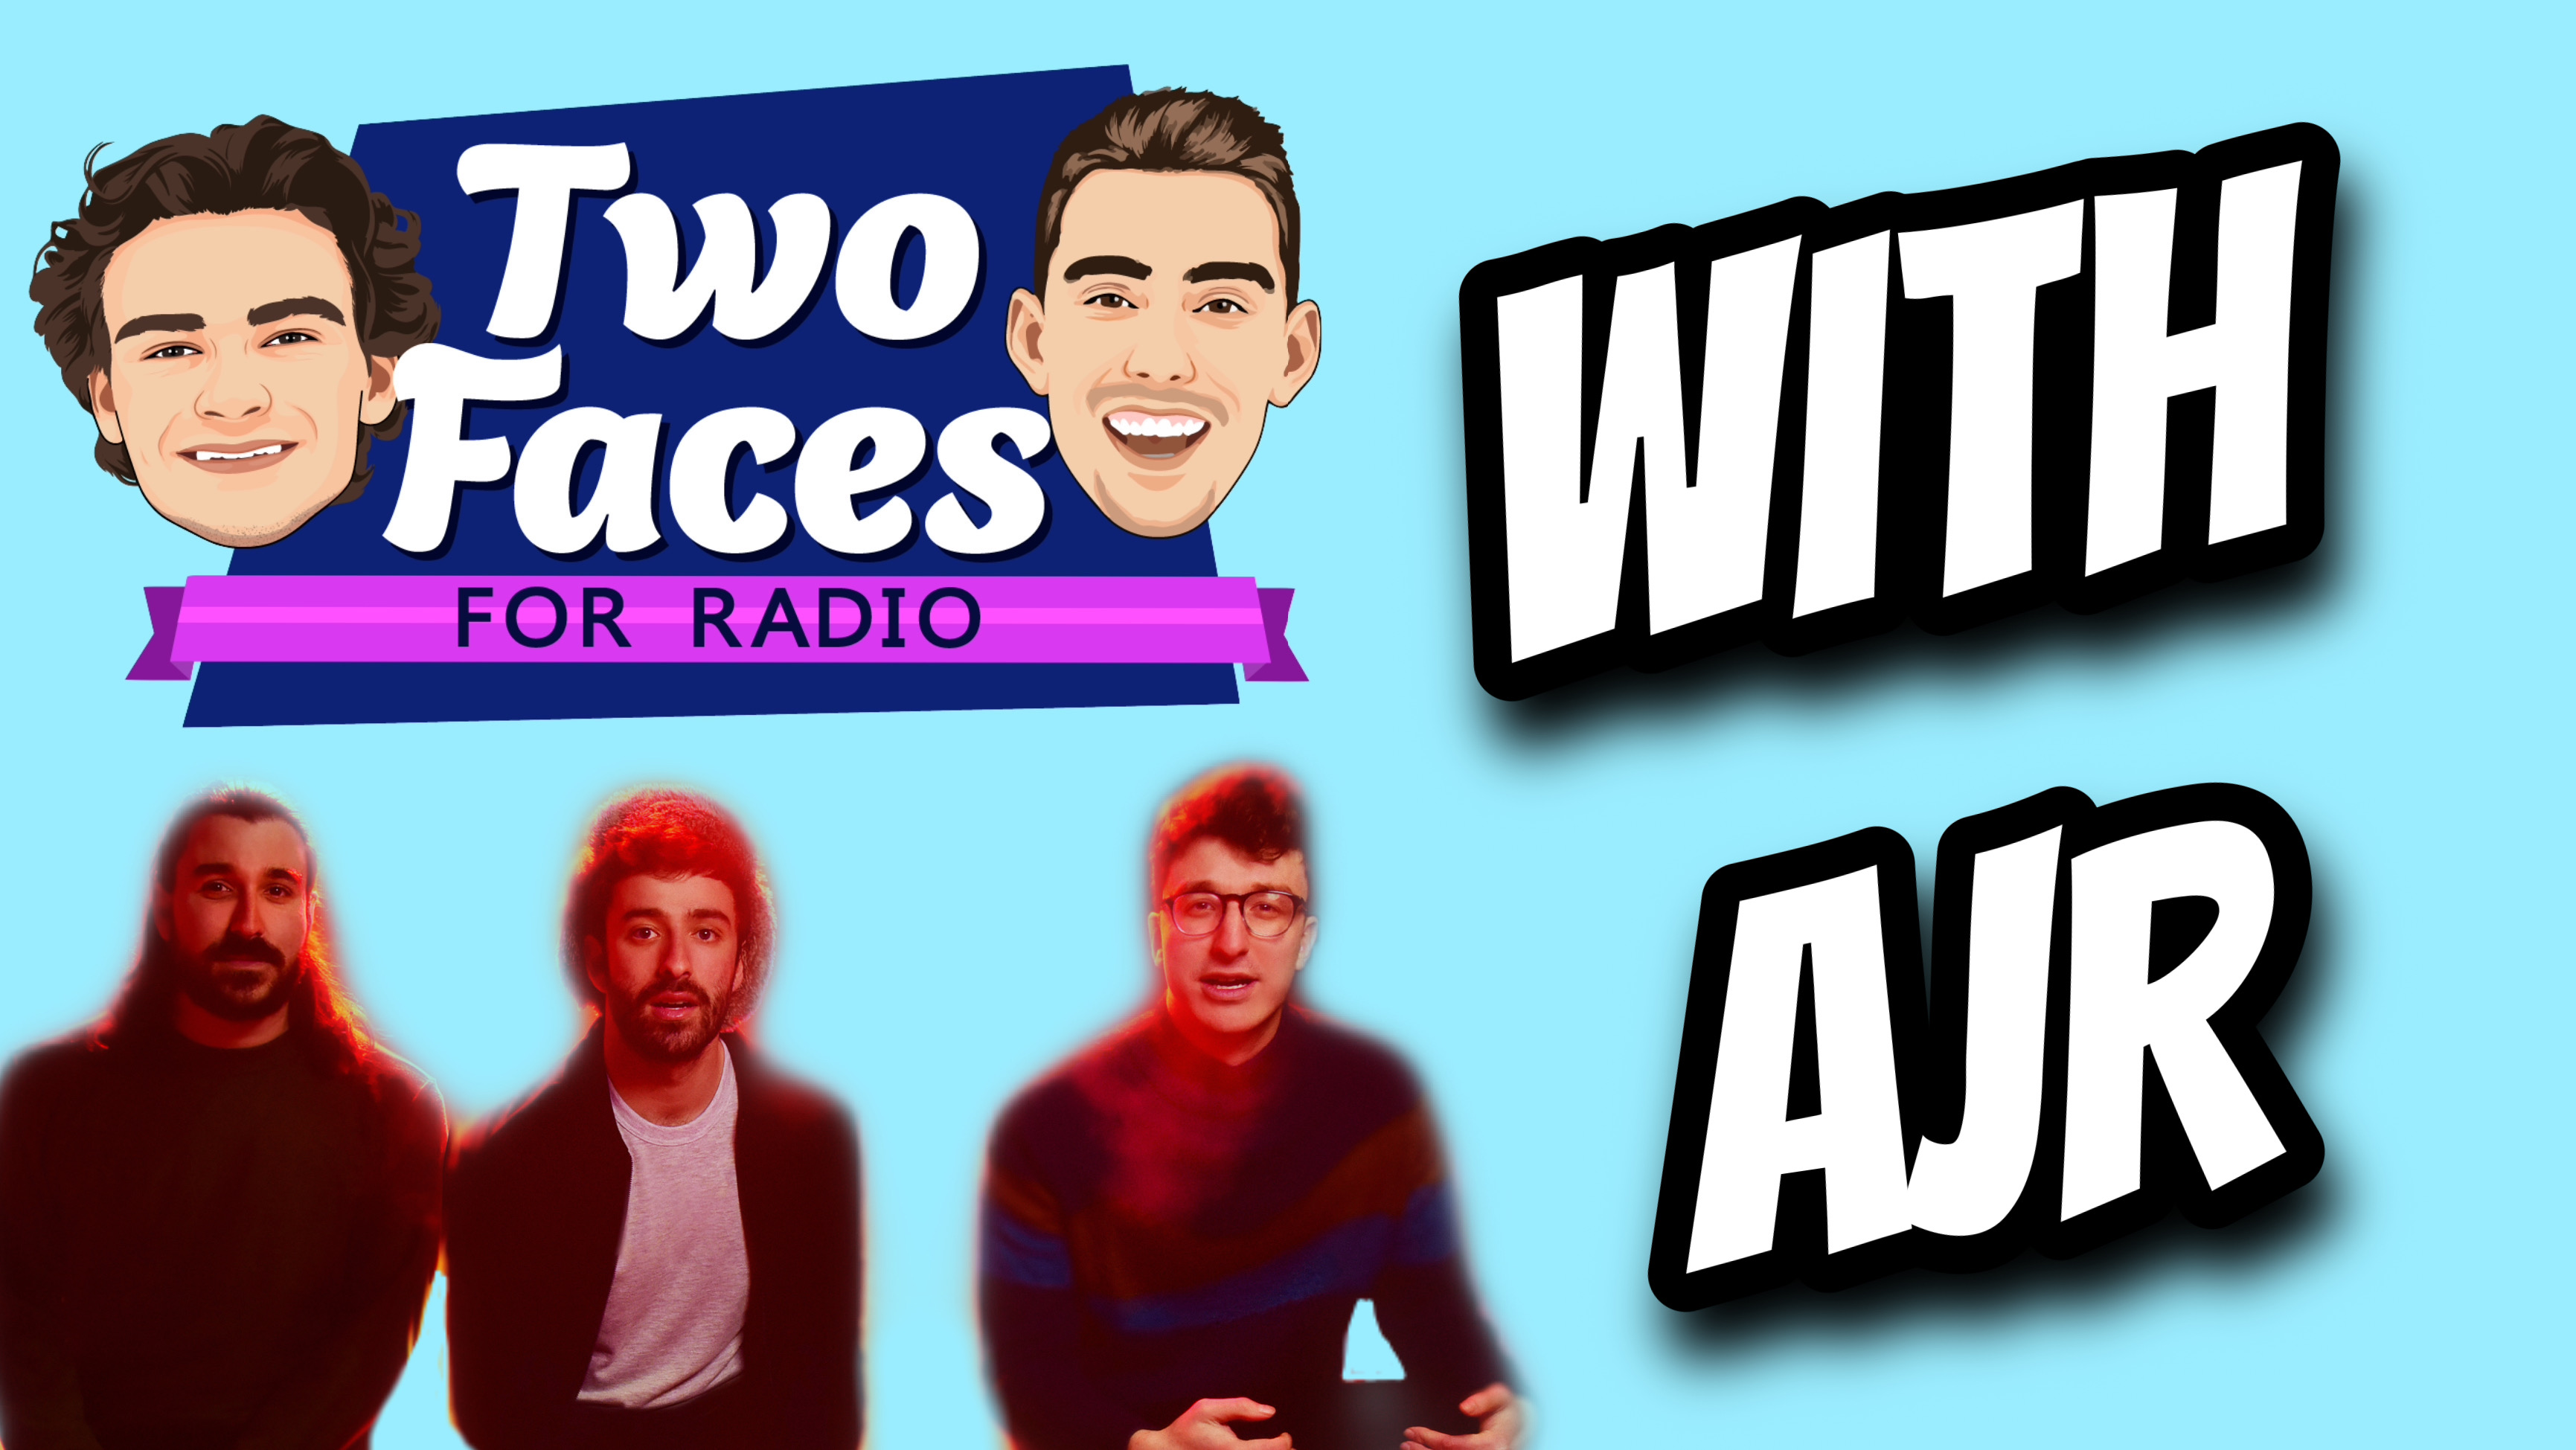 AJR Joins The Two Faces For Radio Podcast [WATCH]